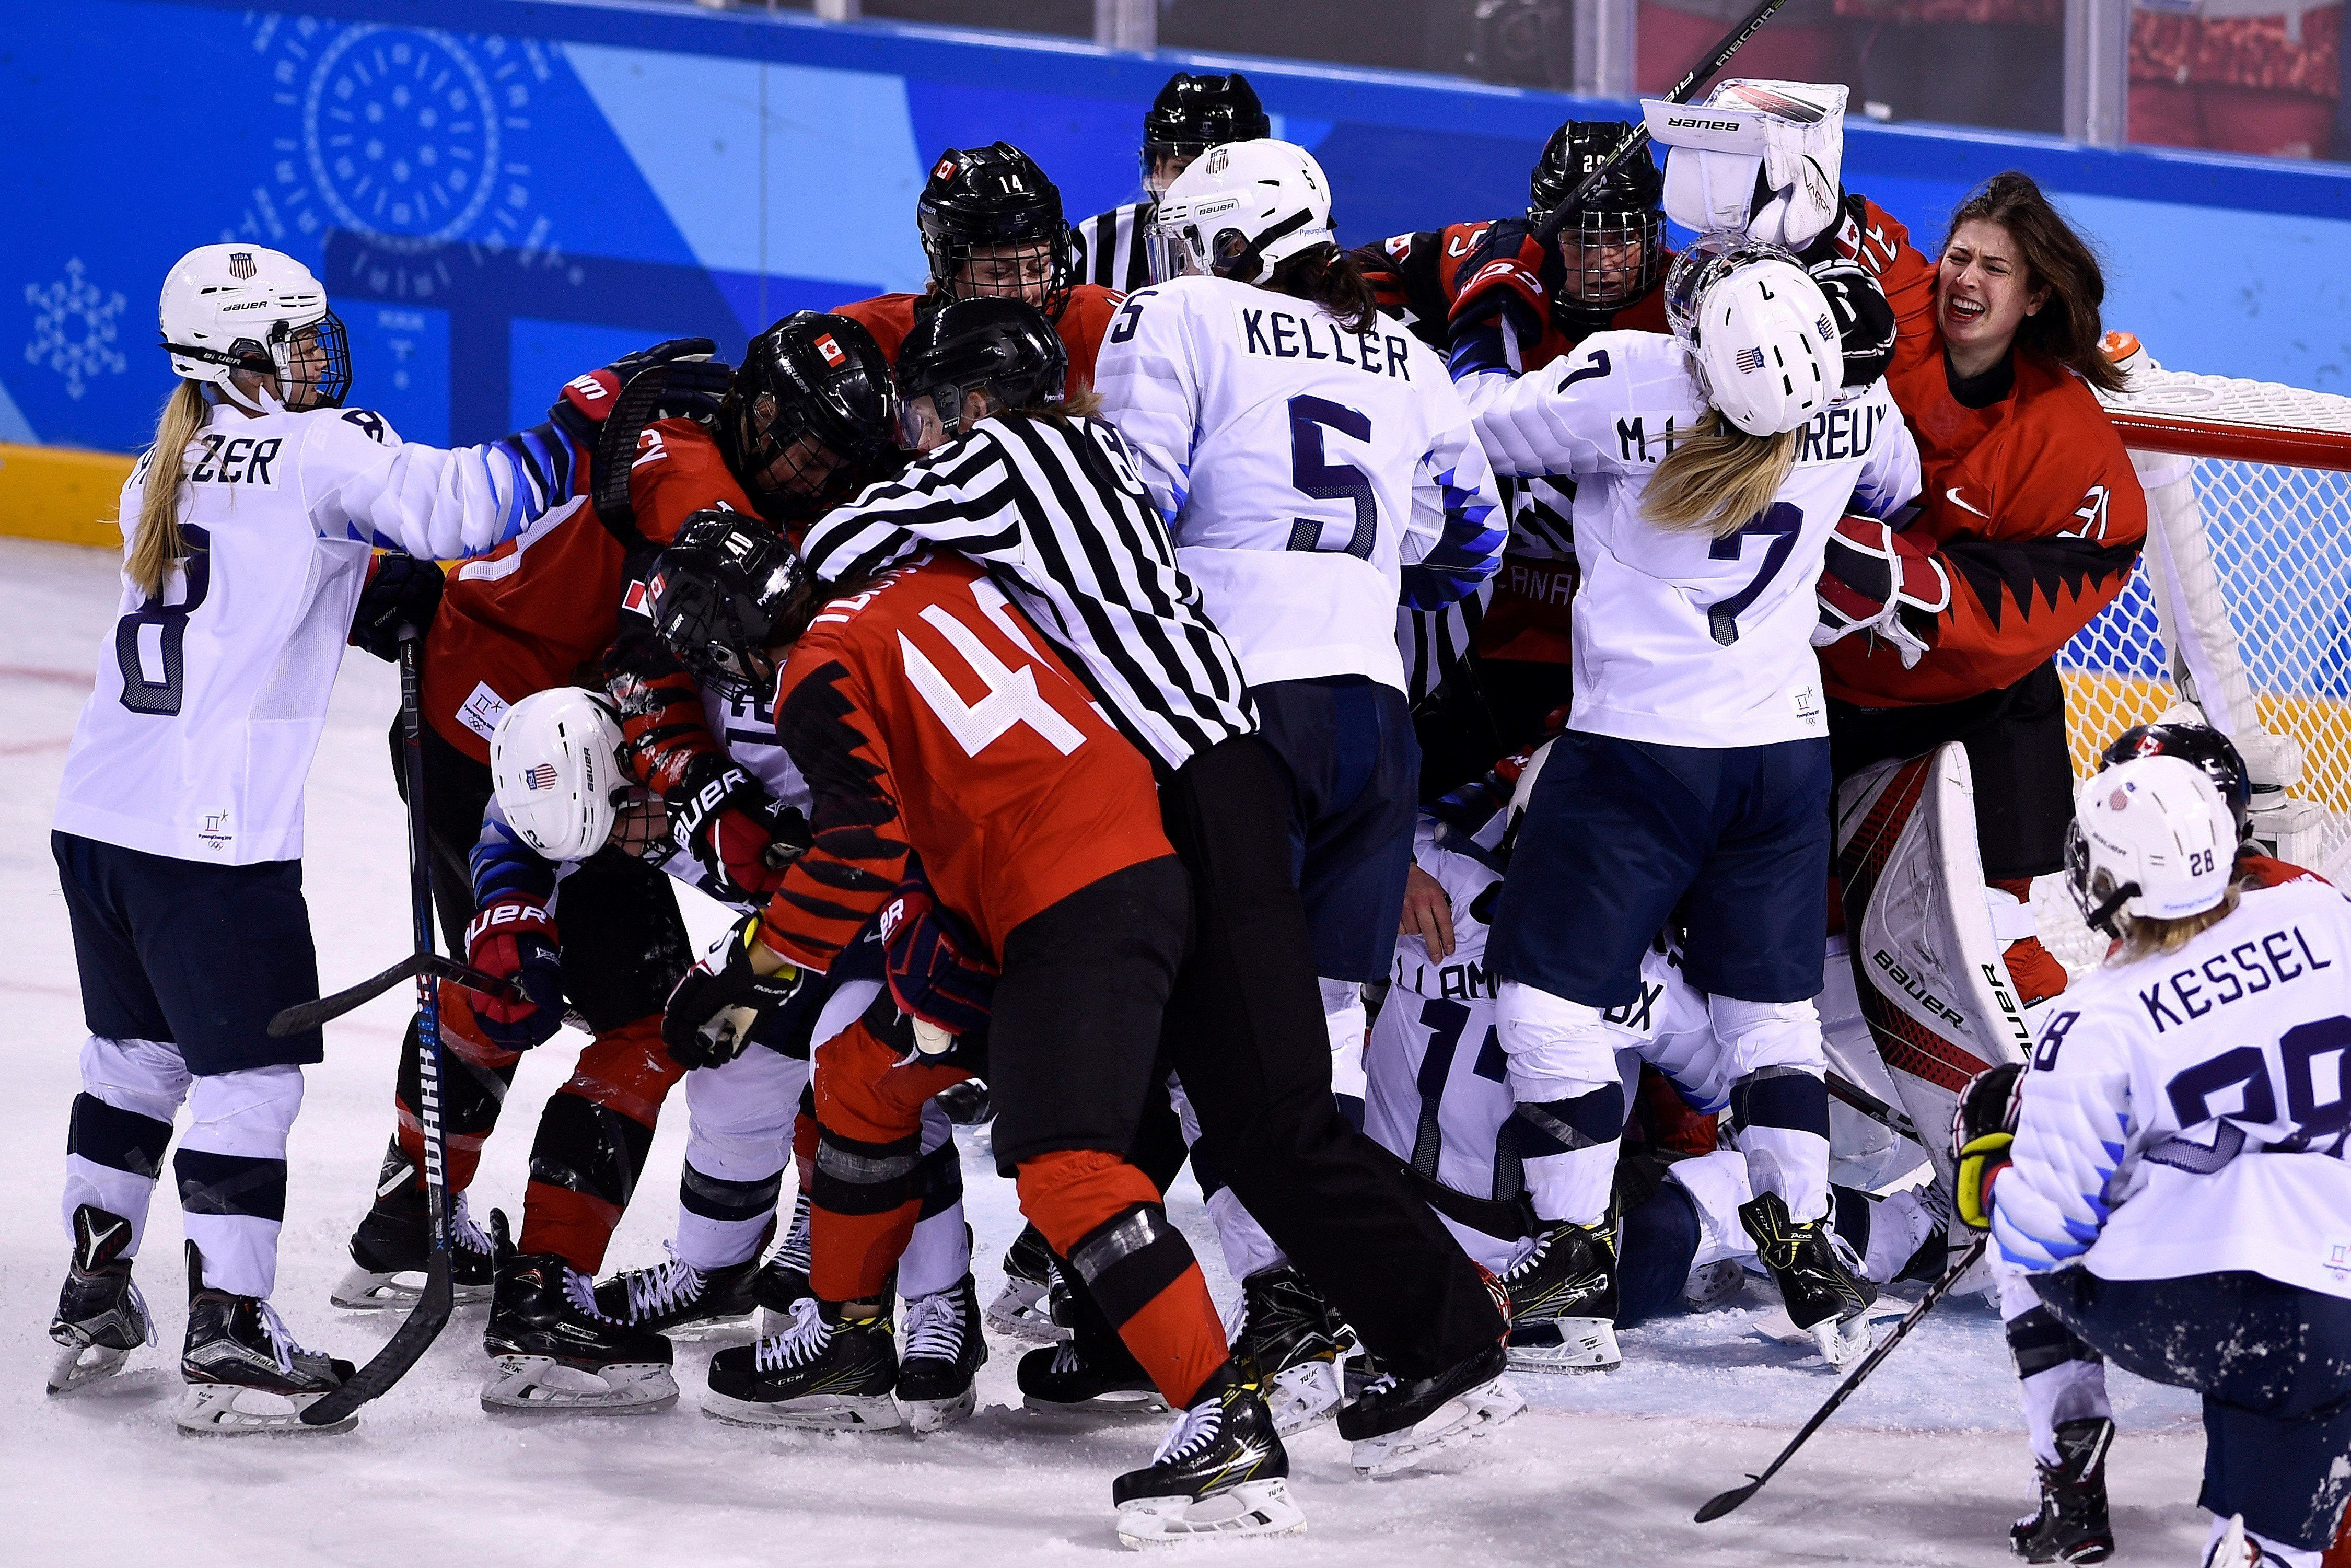 Ice hockey: Women's knockout round set with Canada on top